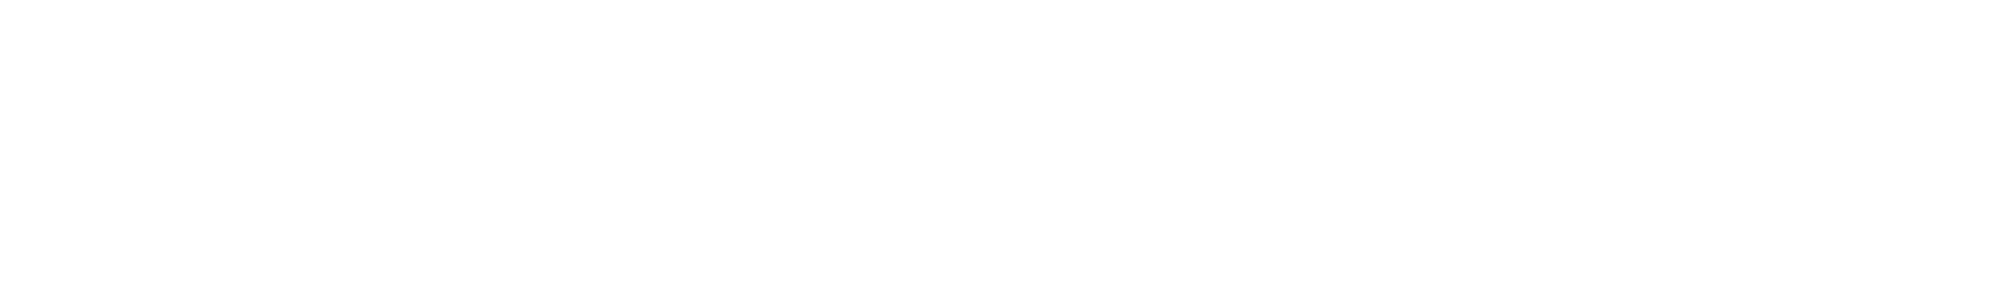 reconnect_logo.png